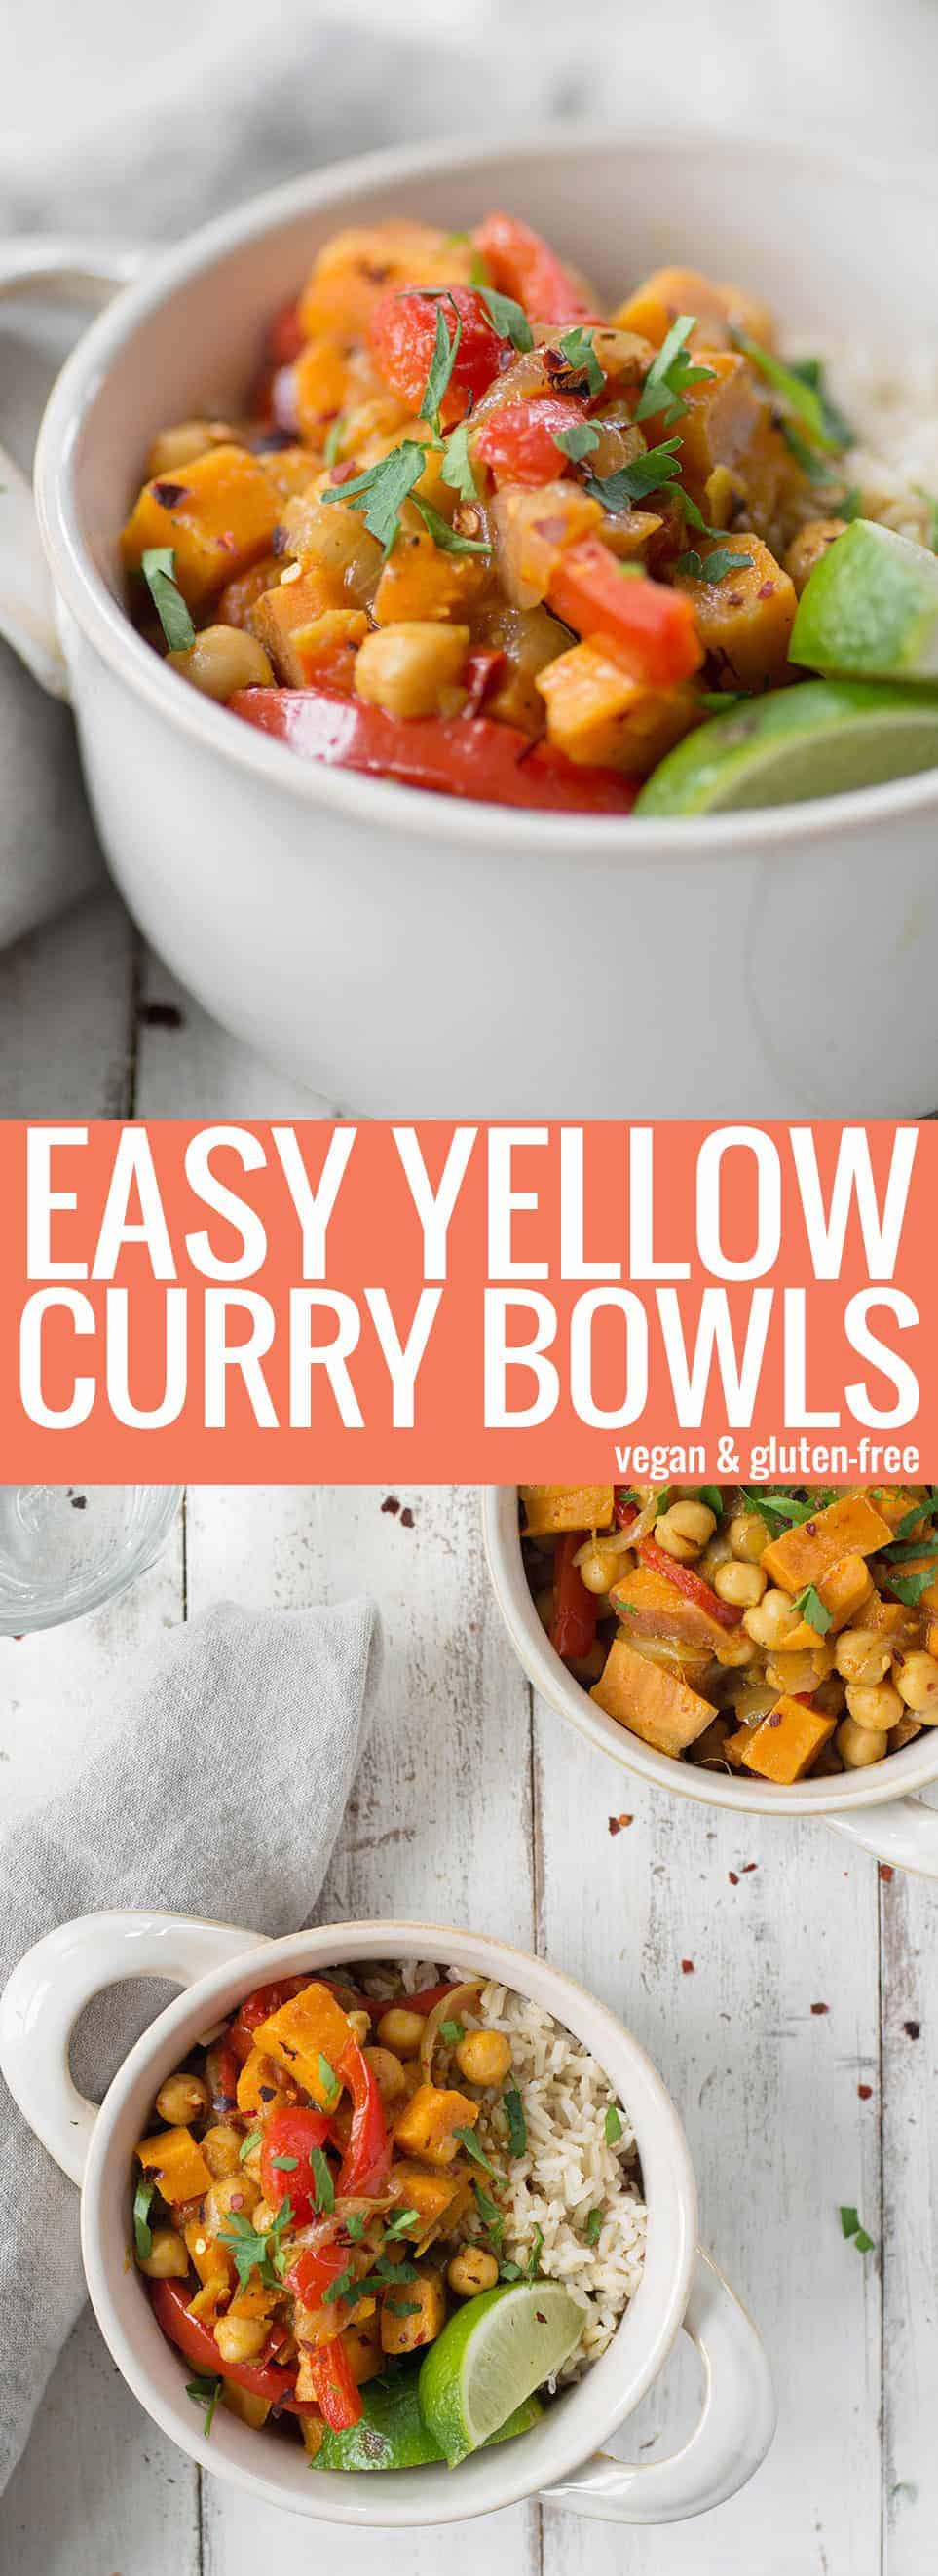 vegan yellow curry bowls